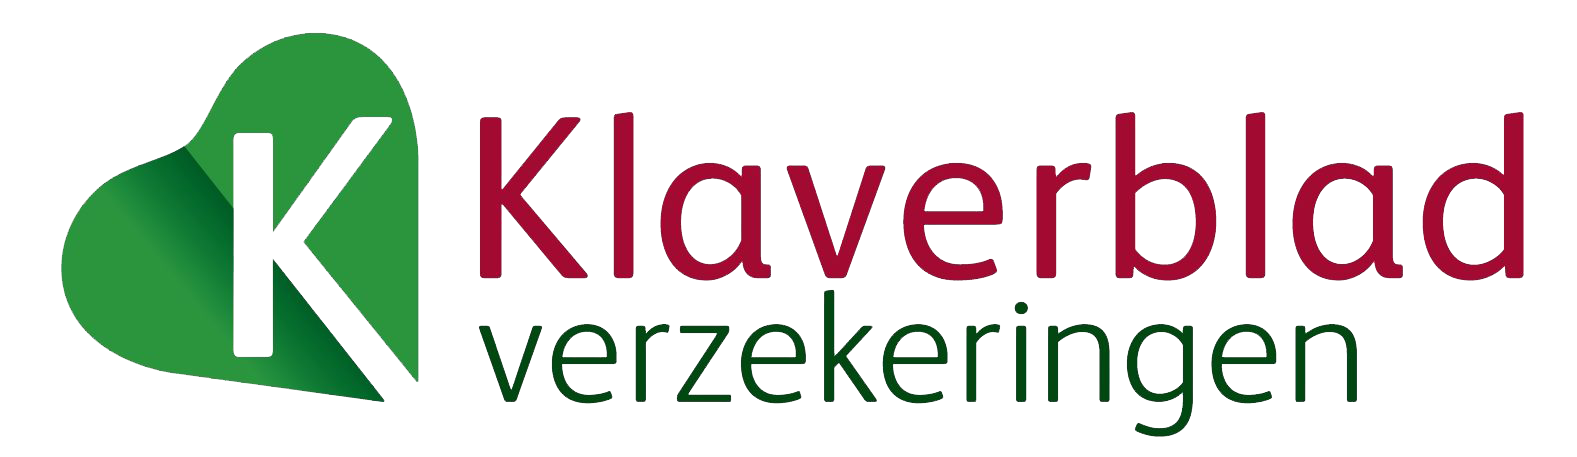 Klaverblad Verzekeringen Meetingpoint